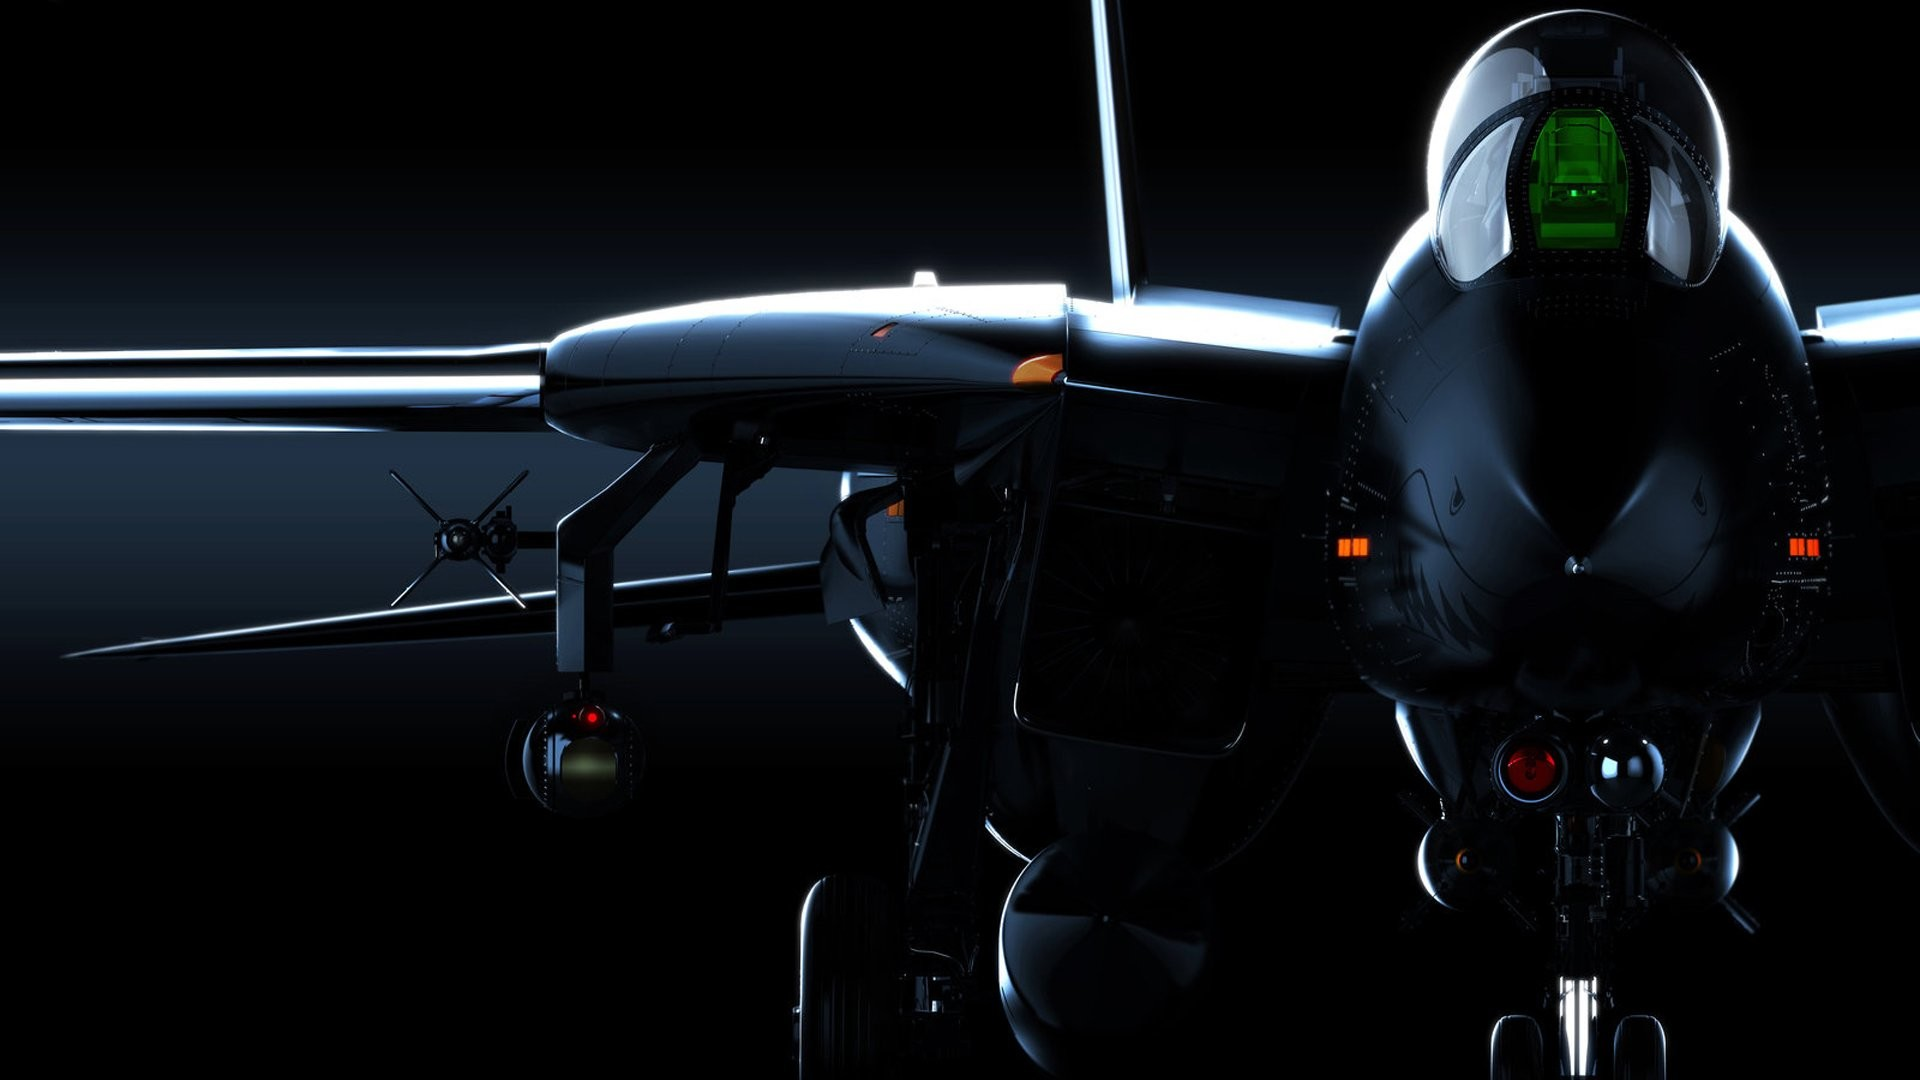 1920x1080 F14 jet fighter military weapon wallpaper |  | 632850 | WallpaperUP